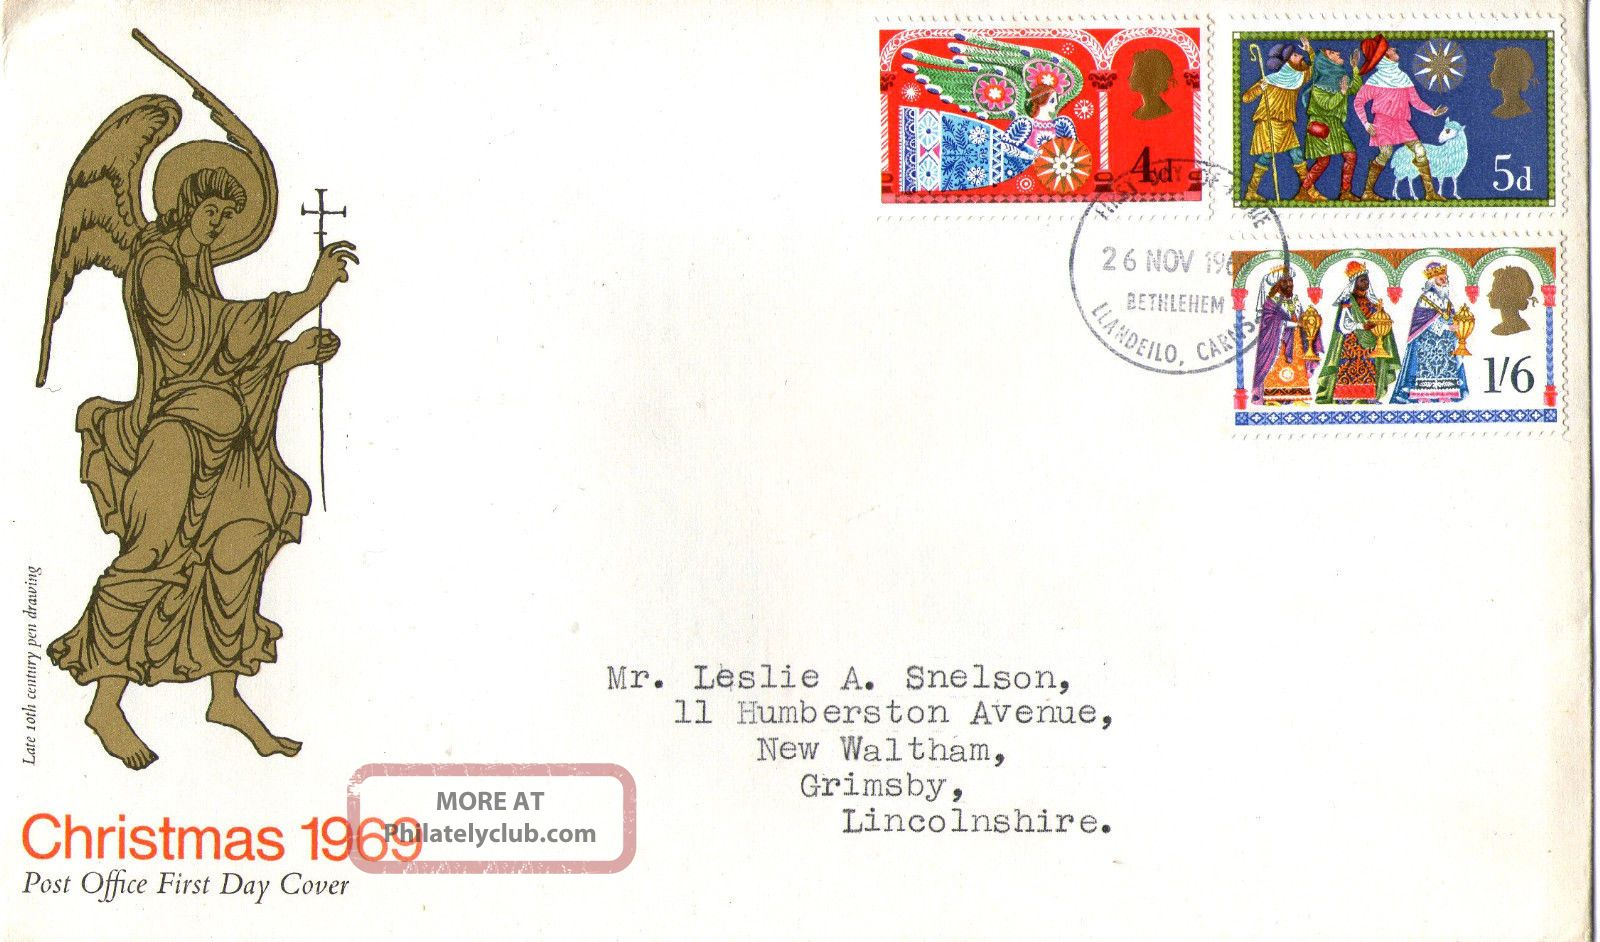 26 November 1969 Christmas Post Office First Day Cover Better Bethlehem Fdi (a) Topical Stamps photo